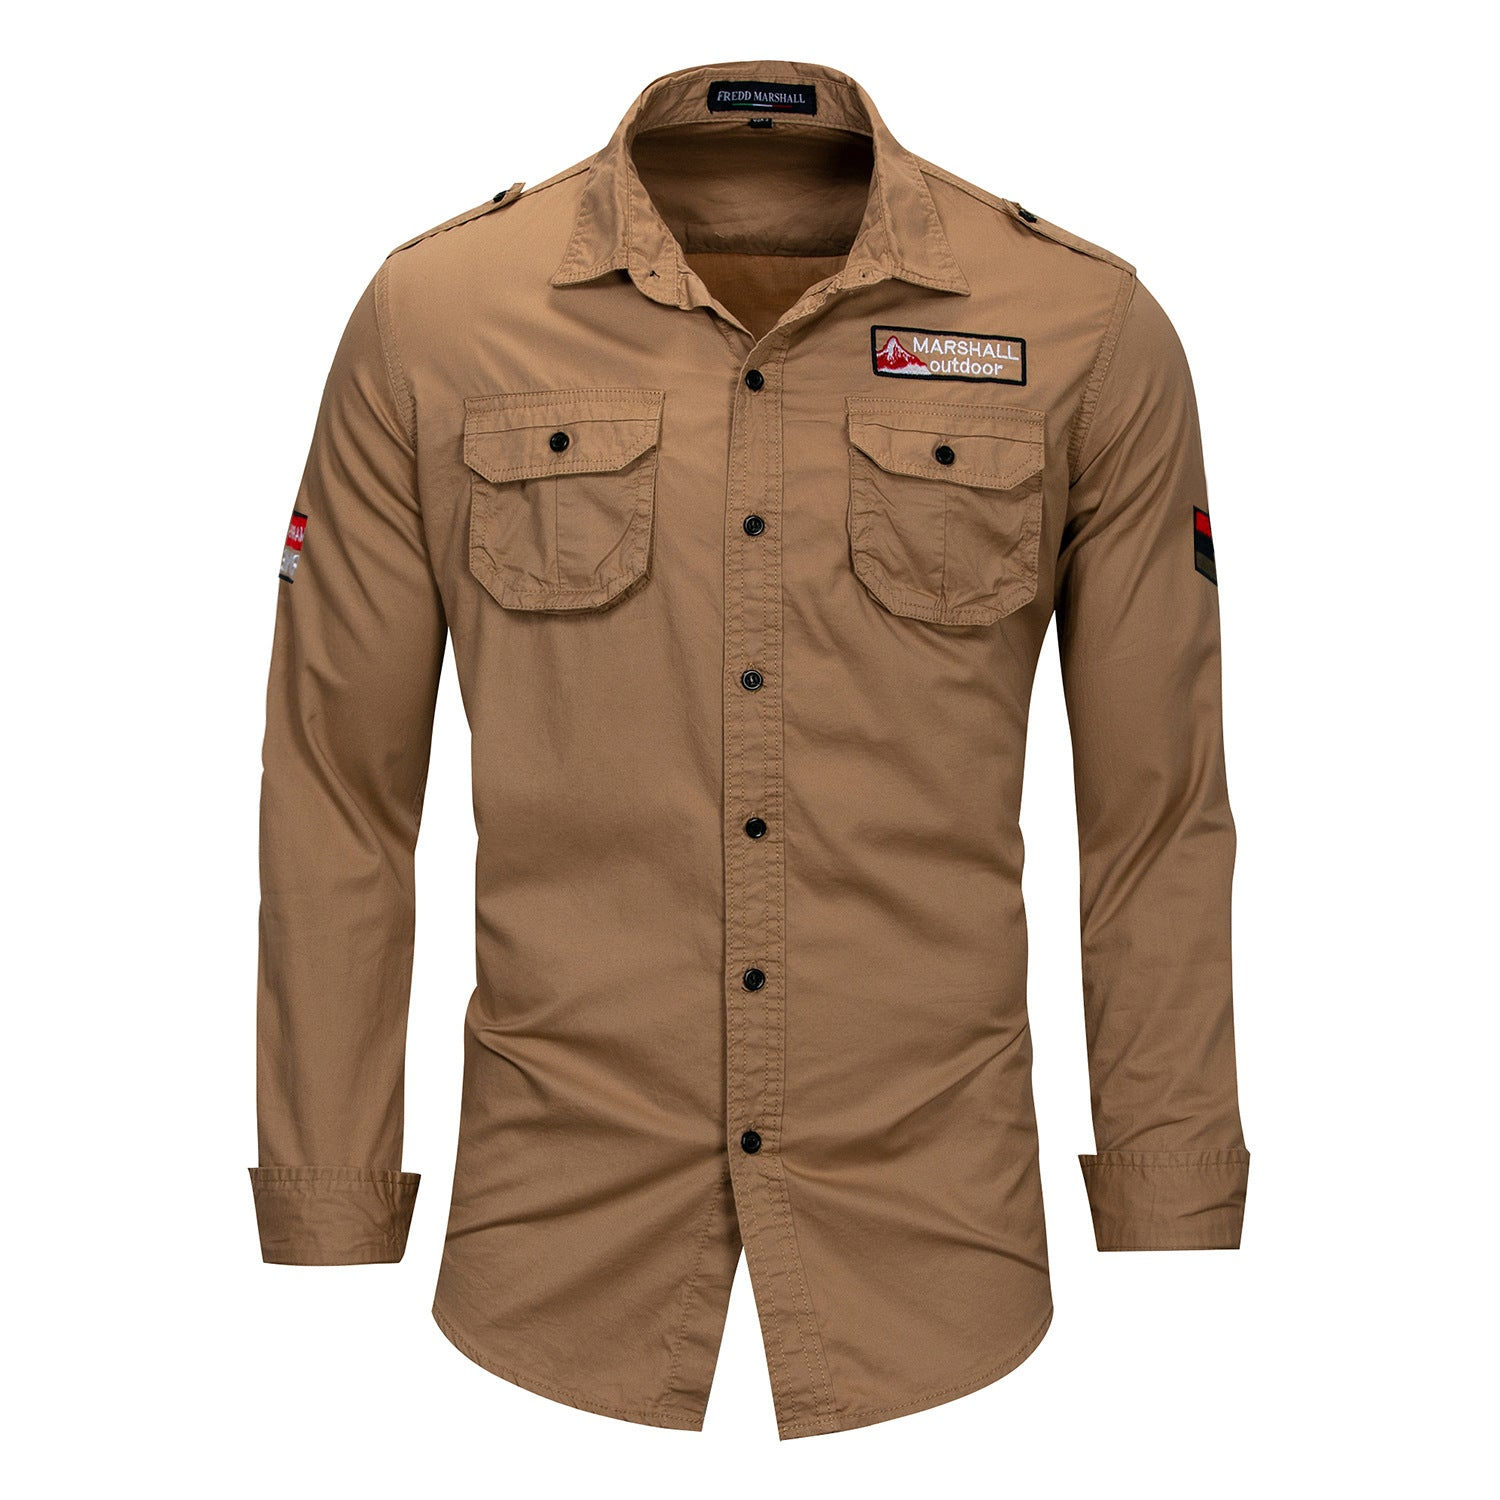 Combo of 4 New Cotton Military Style Long Sleeve Breathable Casual Solid Shirts for Men - freakichic